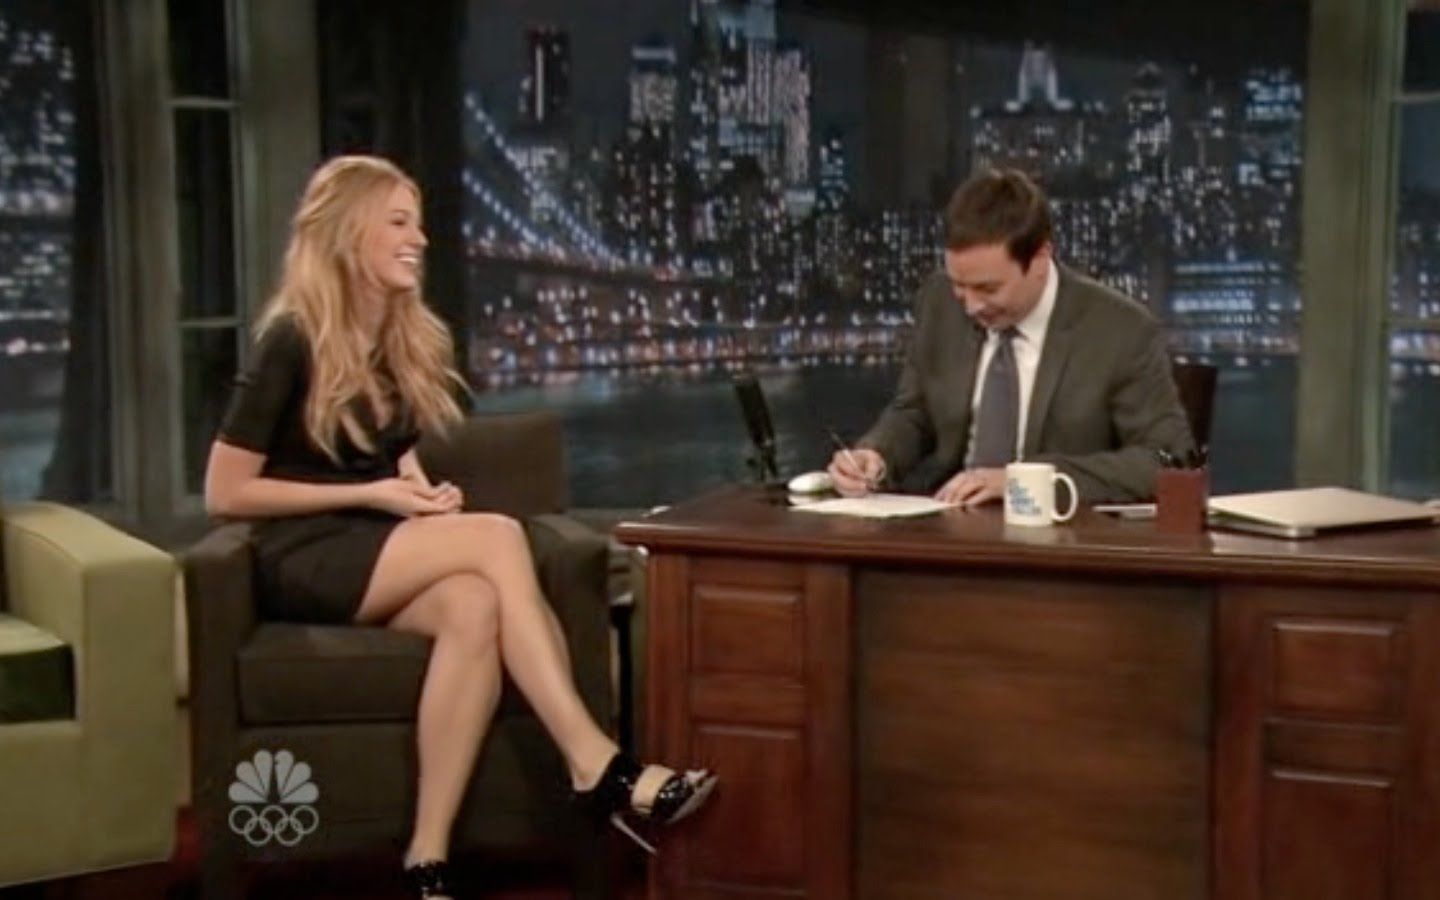 Where Style Music Meet Blake Lively On Jimmy Fallon